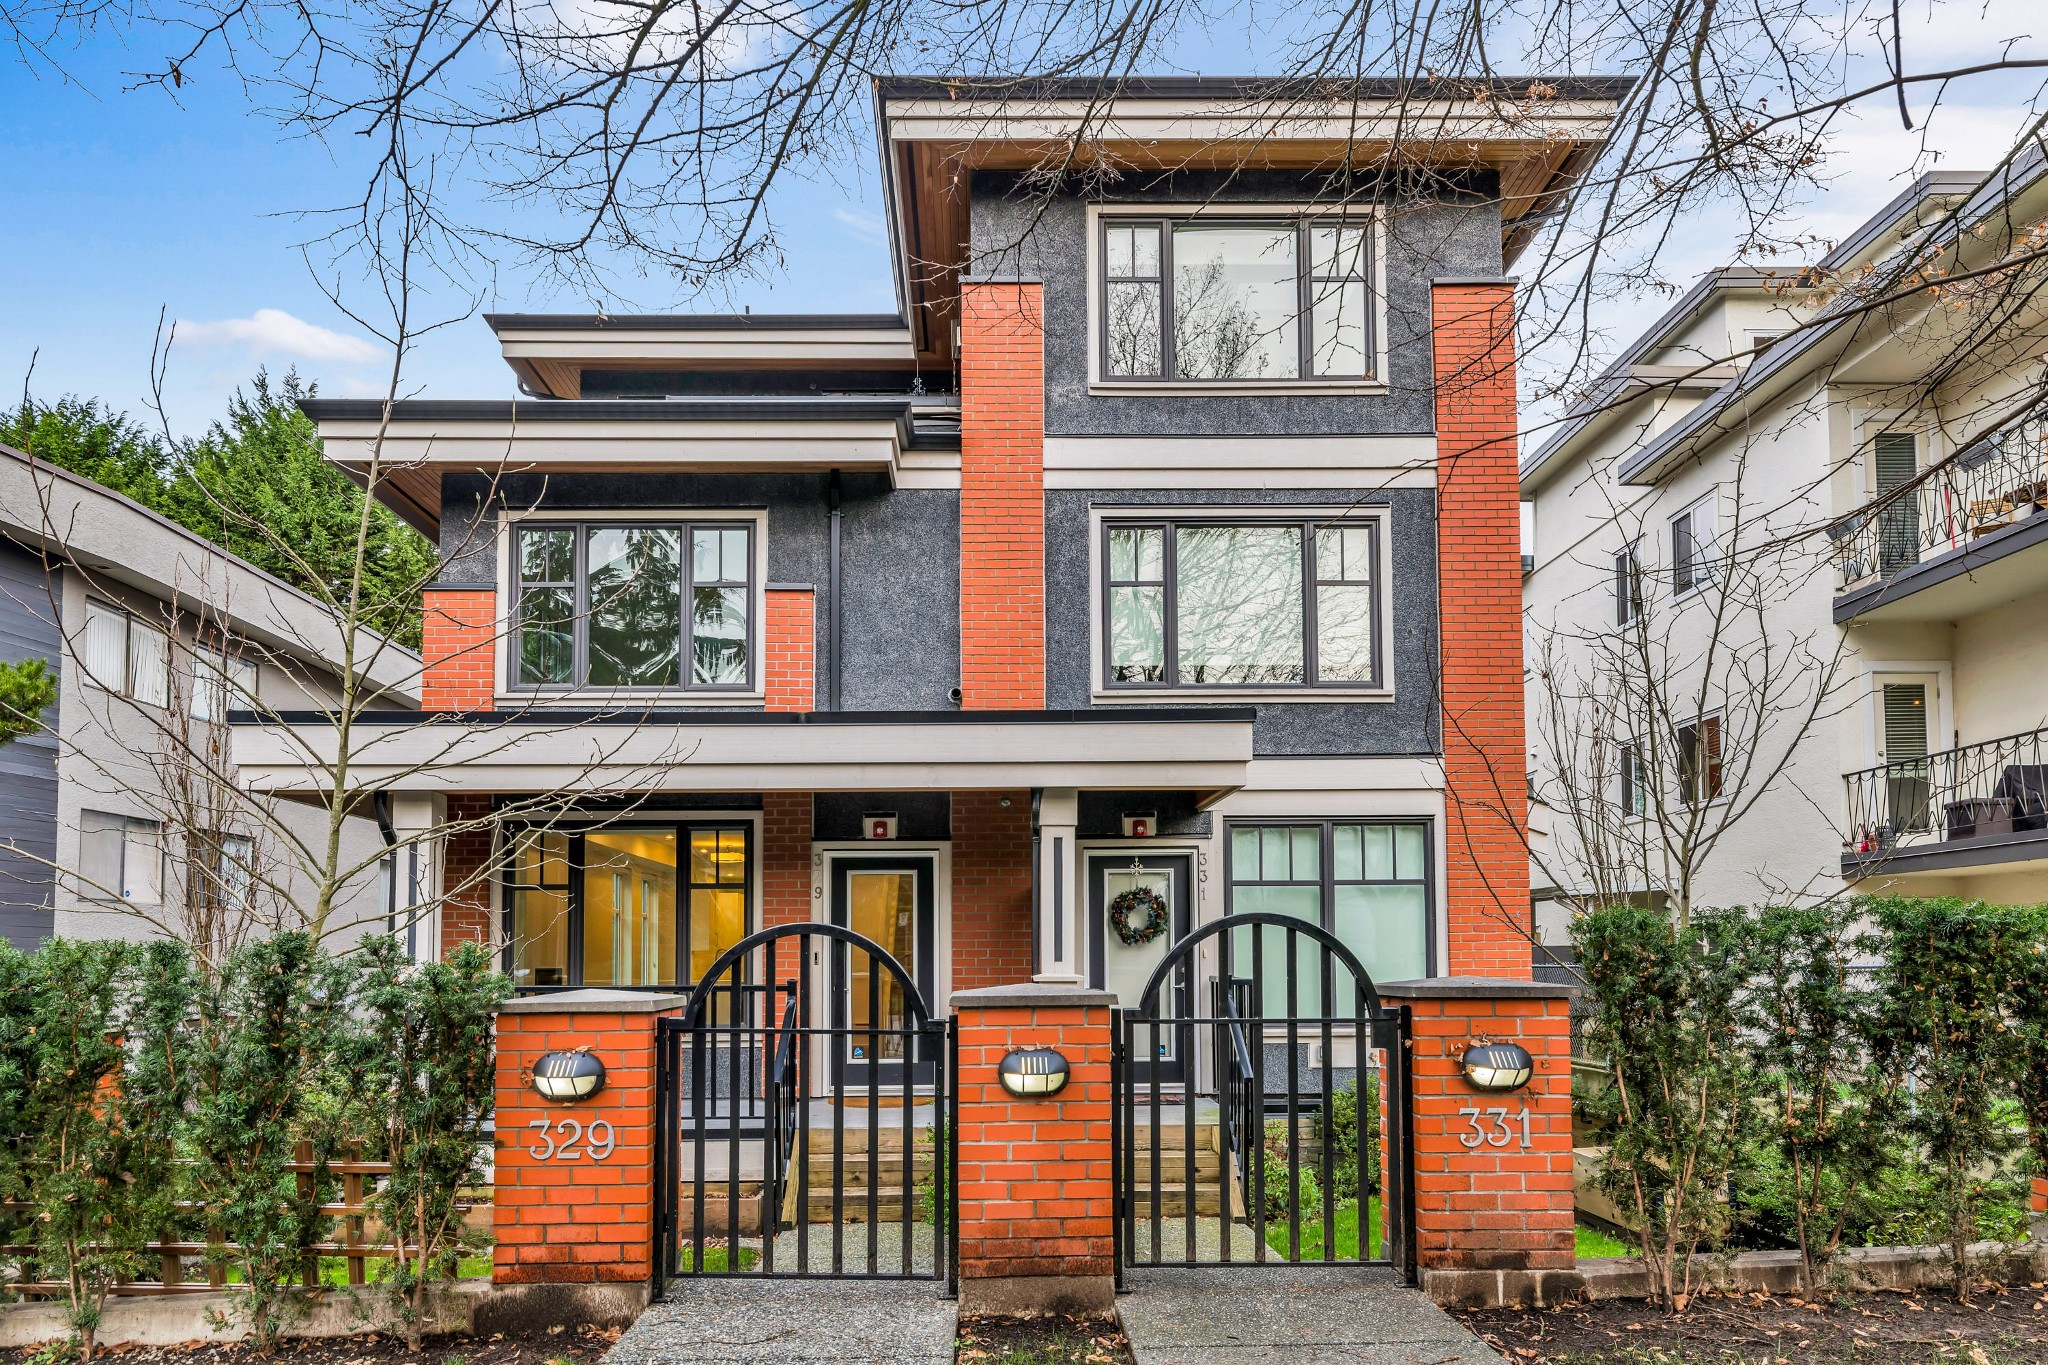 FEATURED LISTING: 329 7TH Avenue East Vancouver